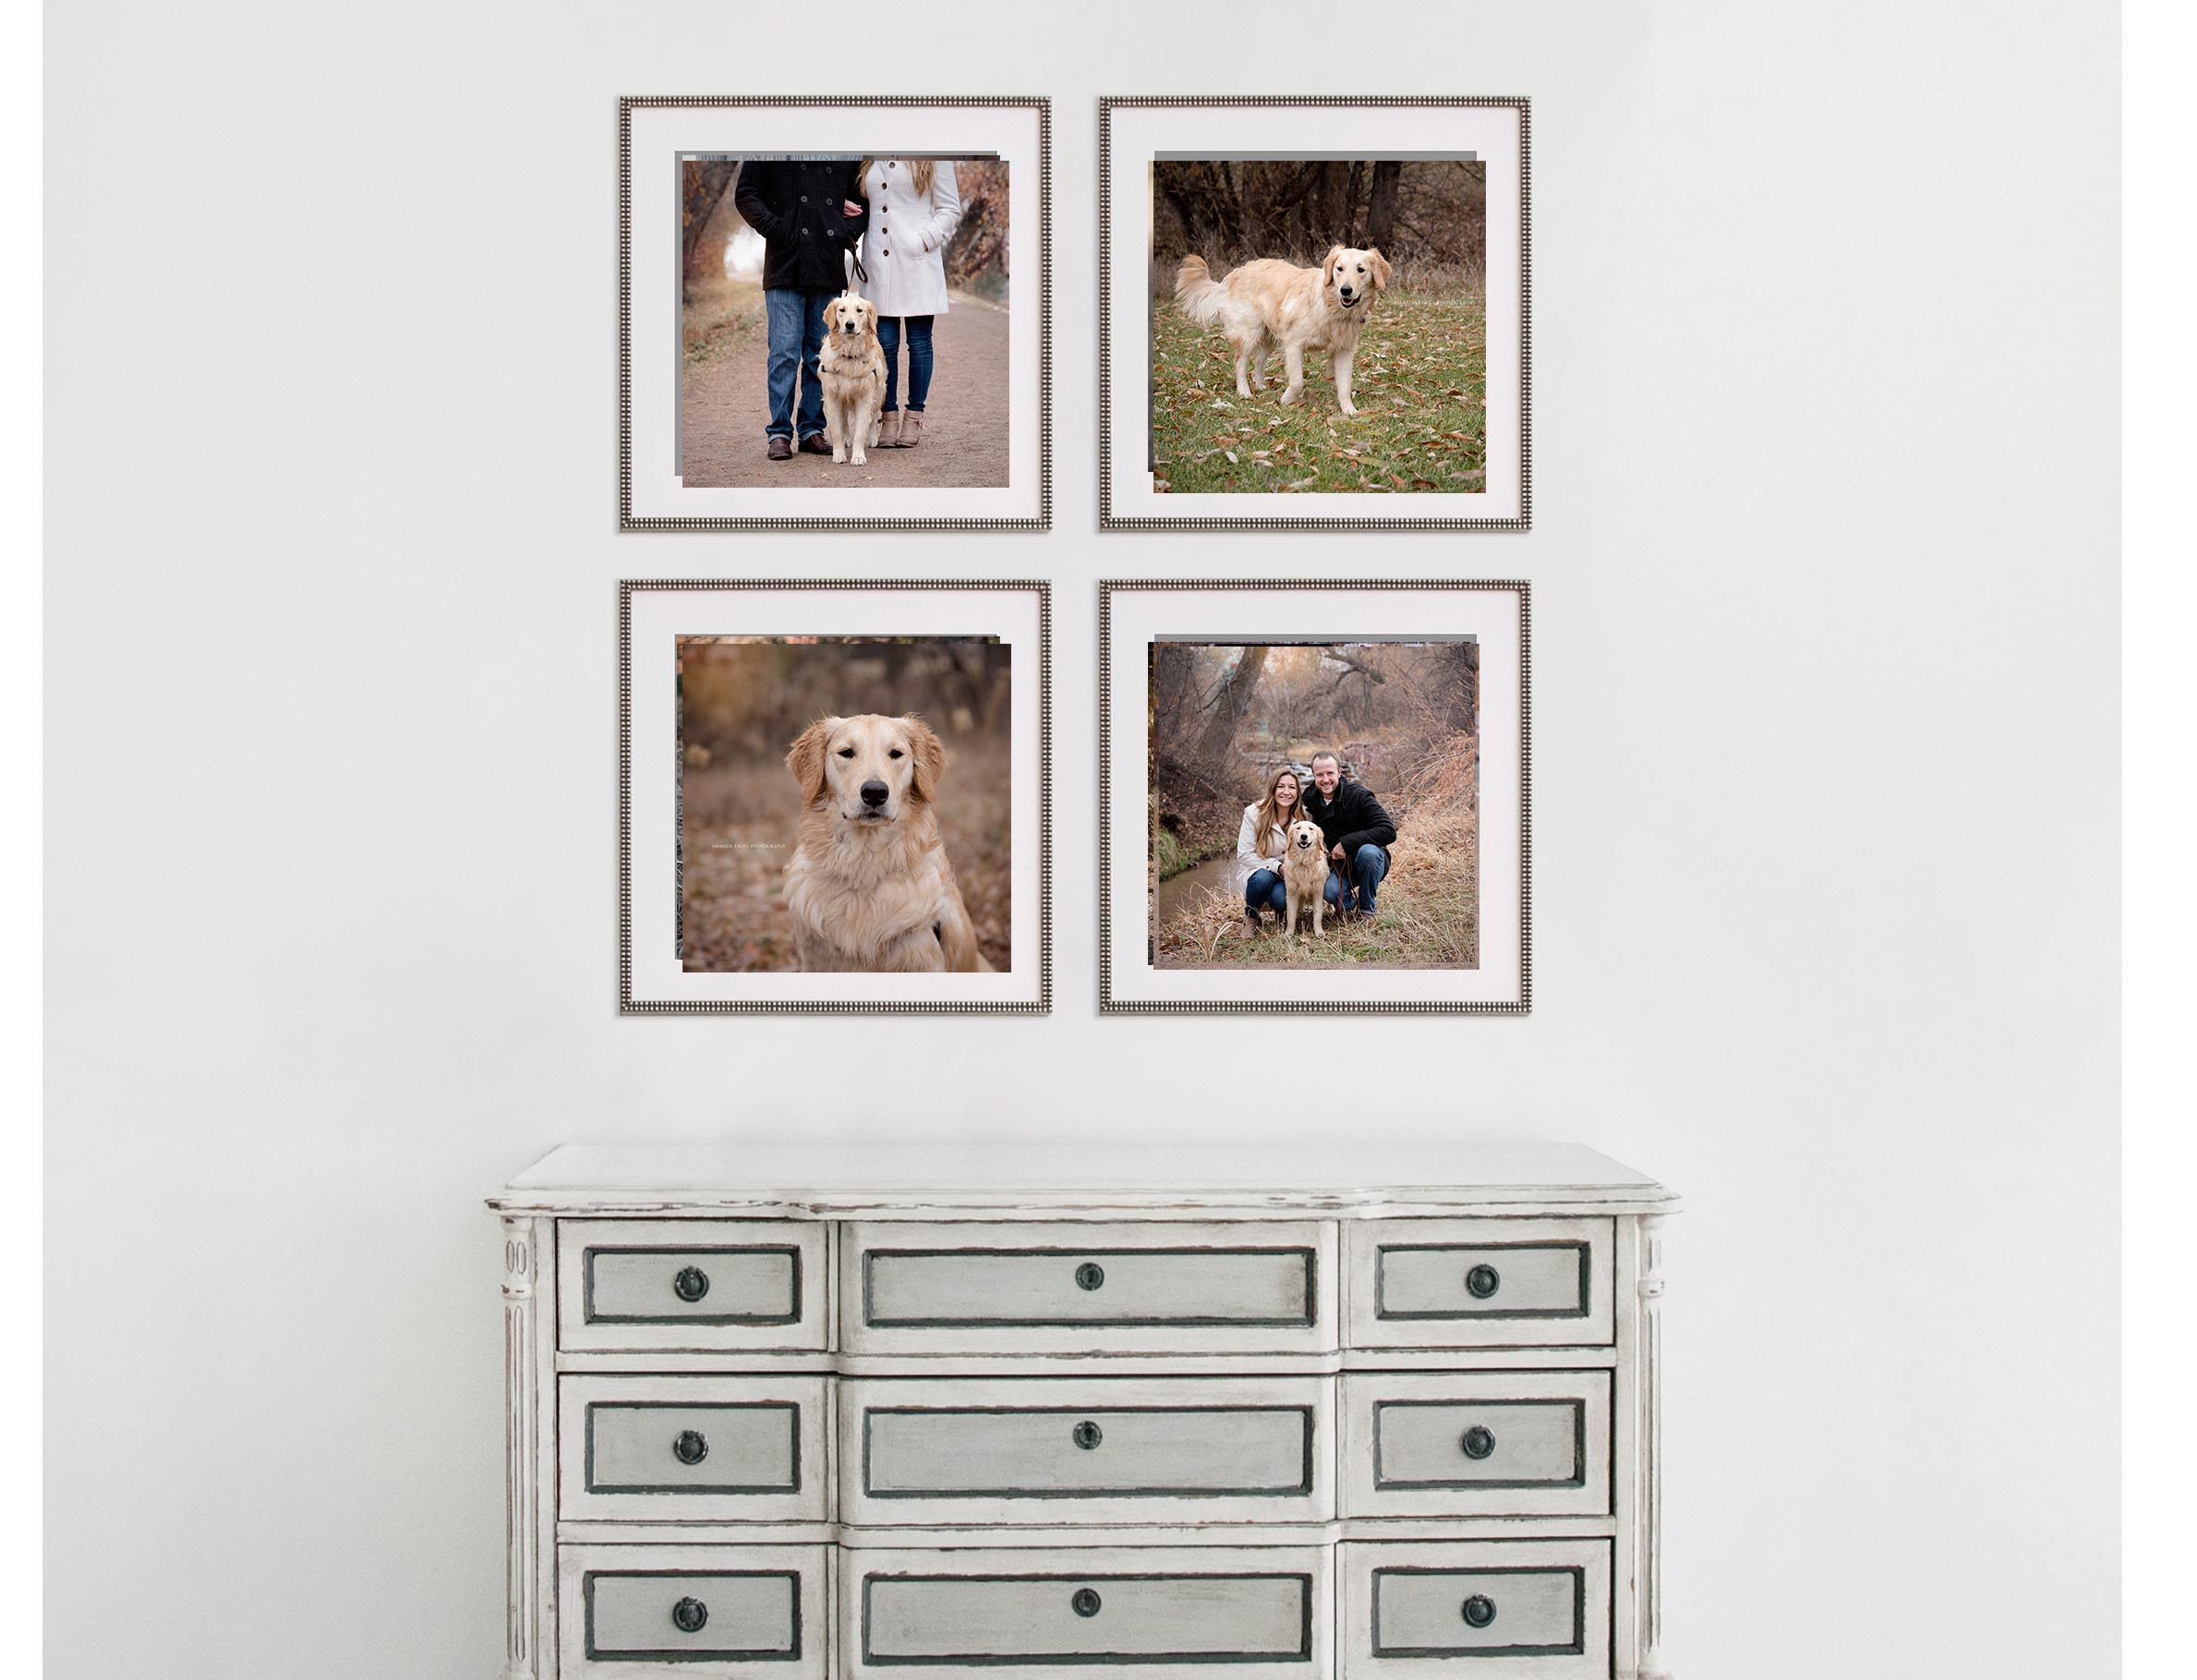 A gallery wall collection can tell the story of your dog